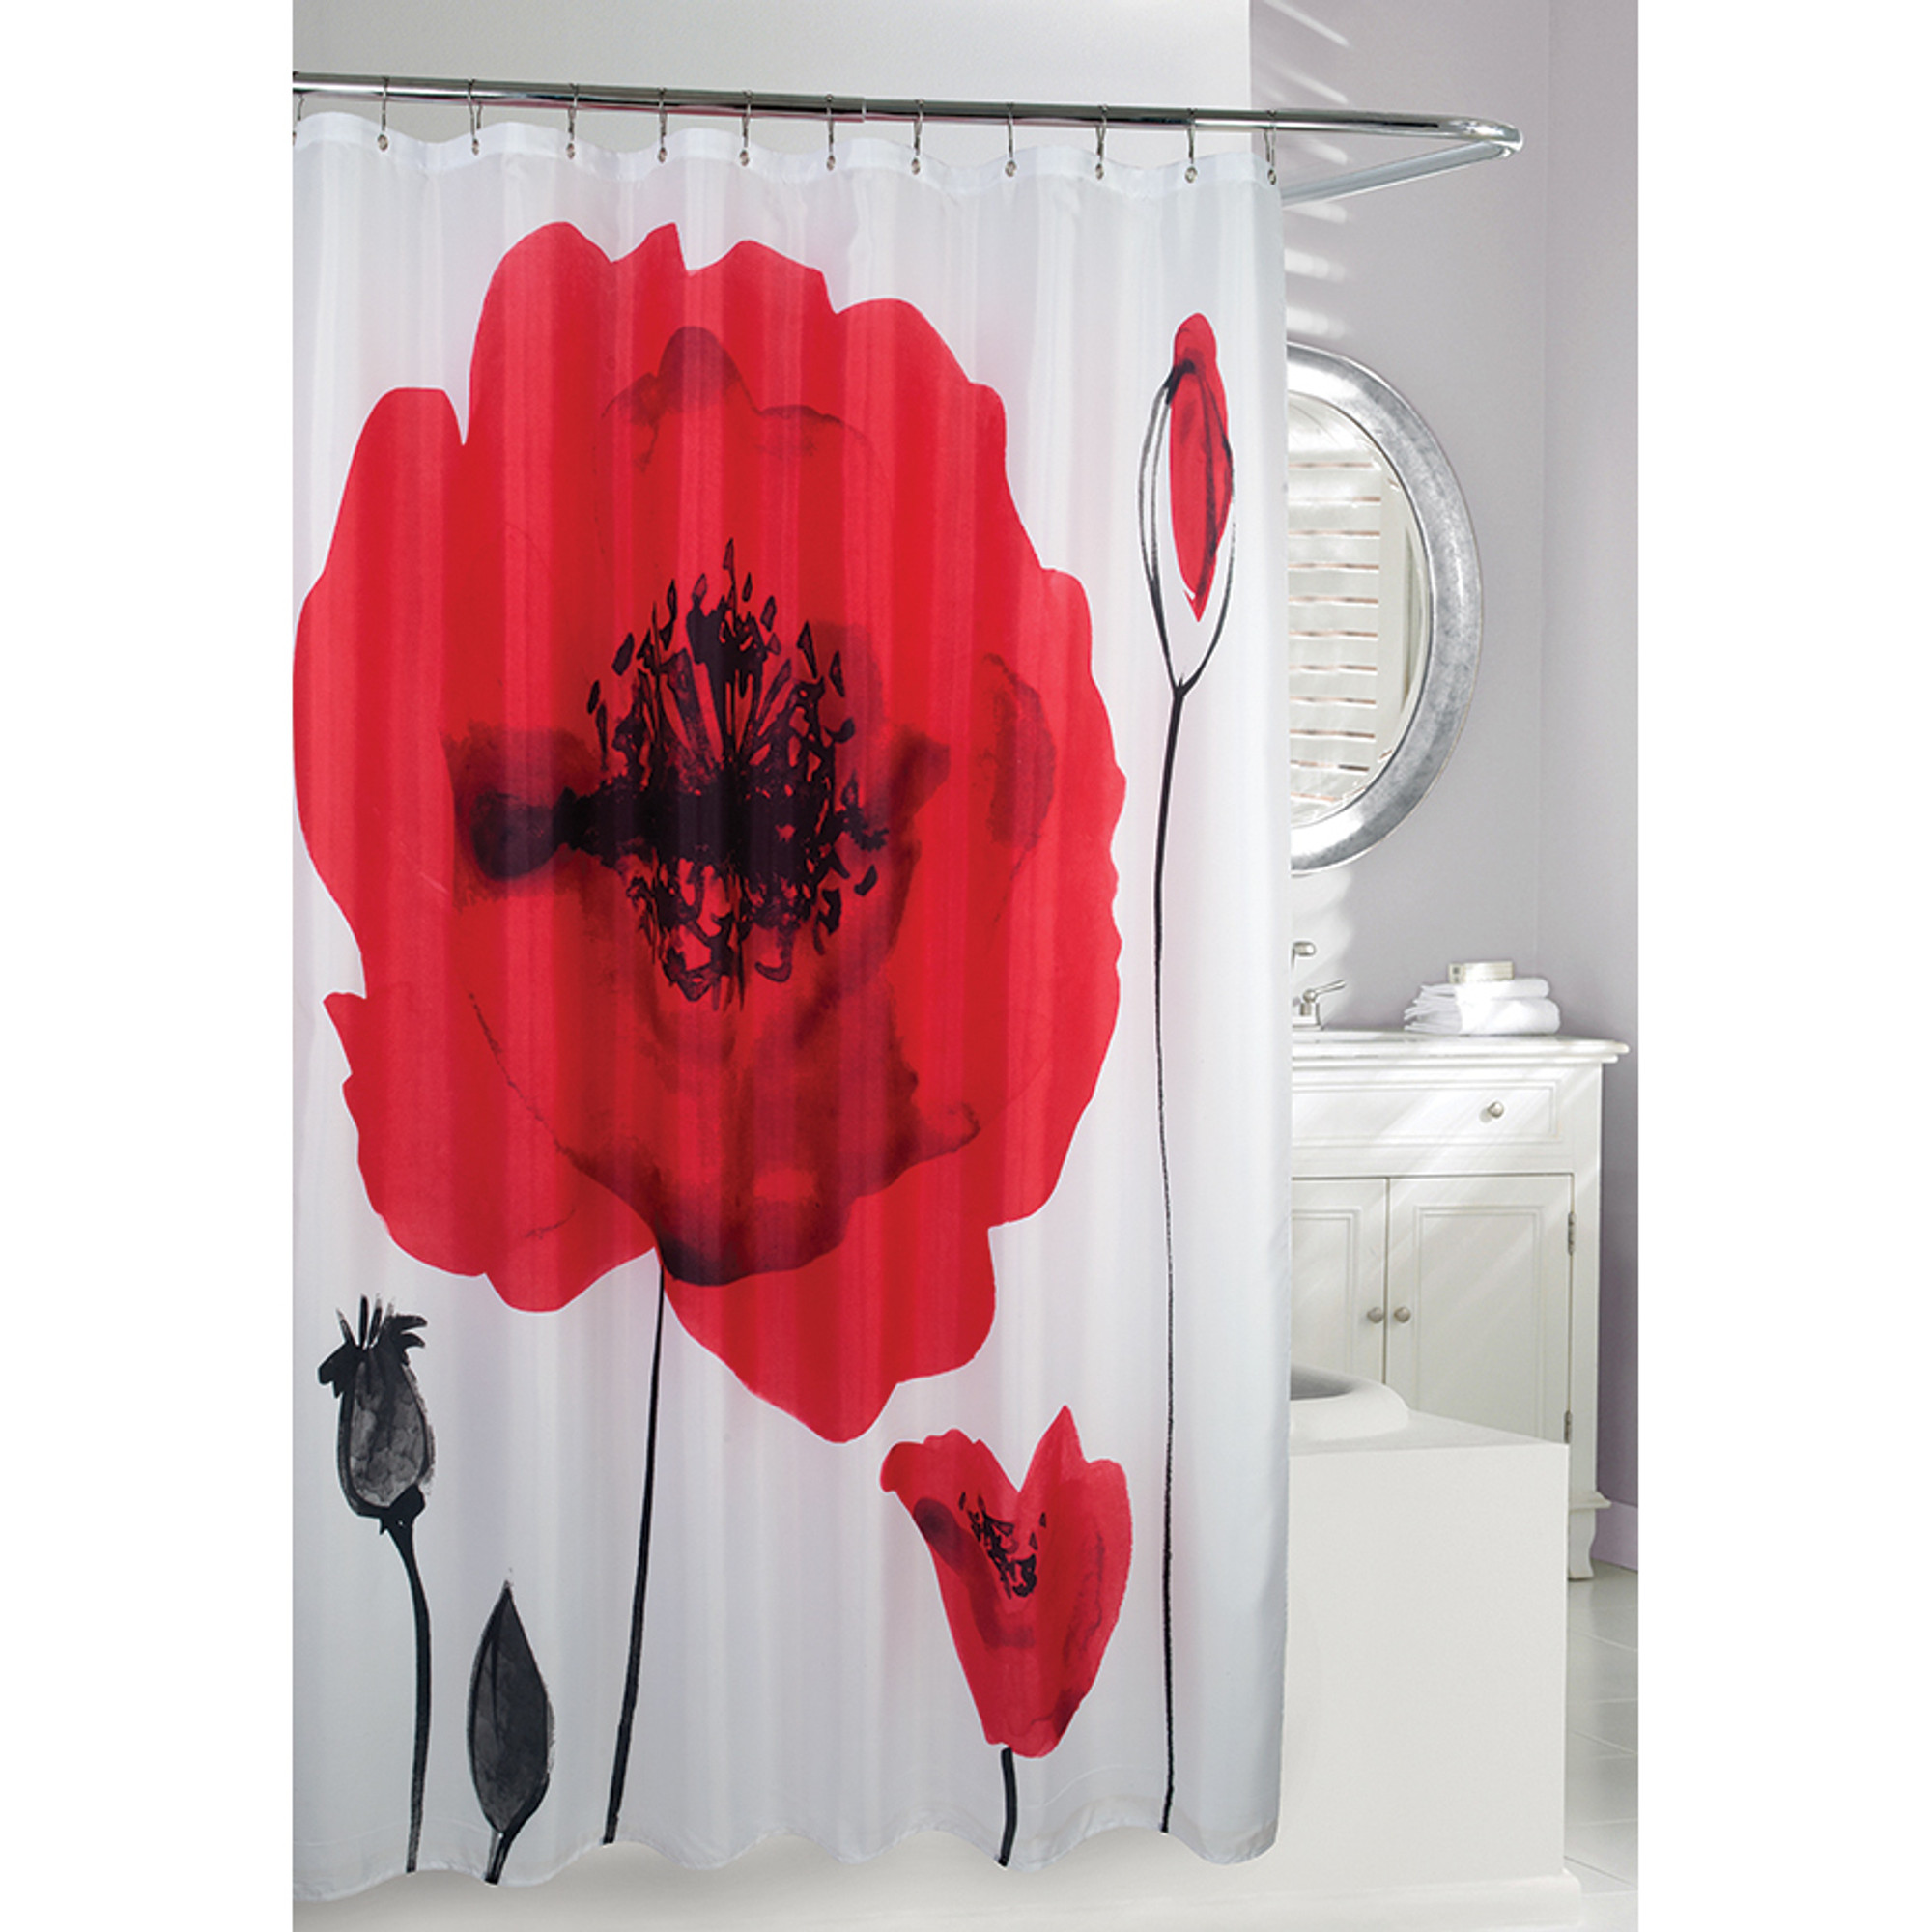 Poppy Explosion Fabric Shower Curtain